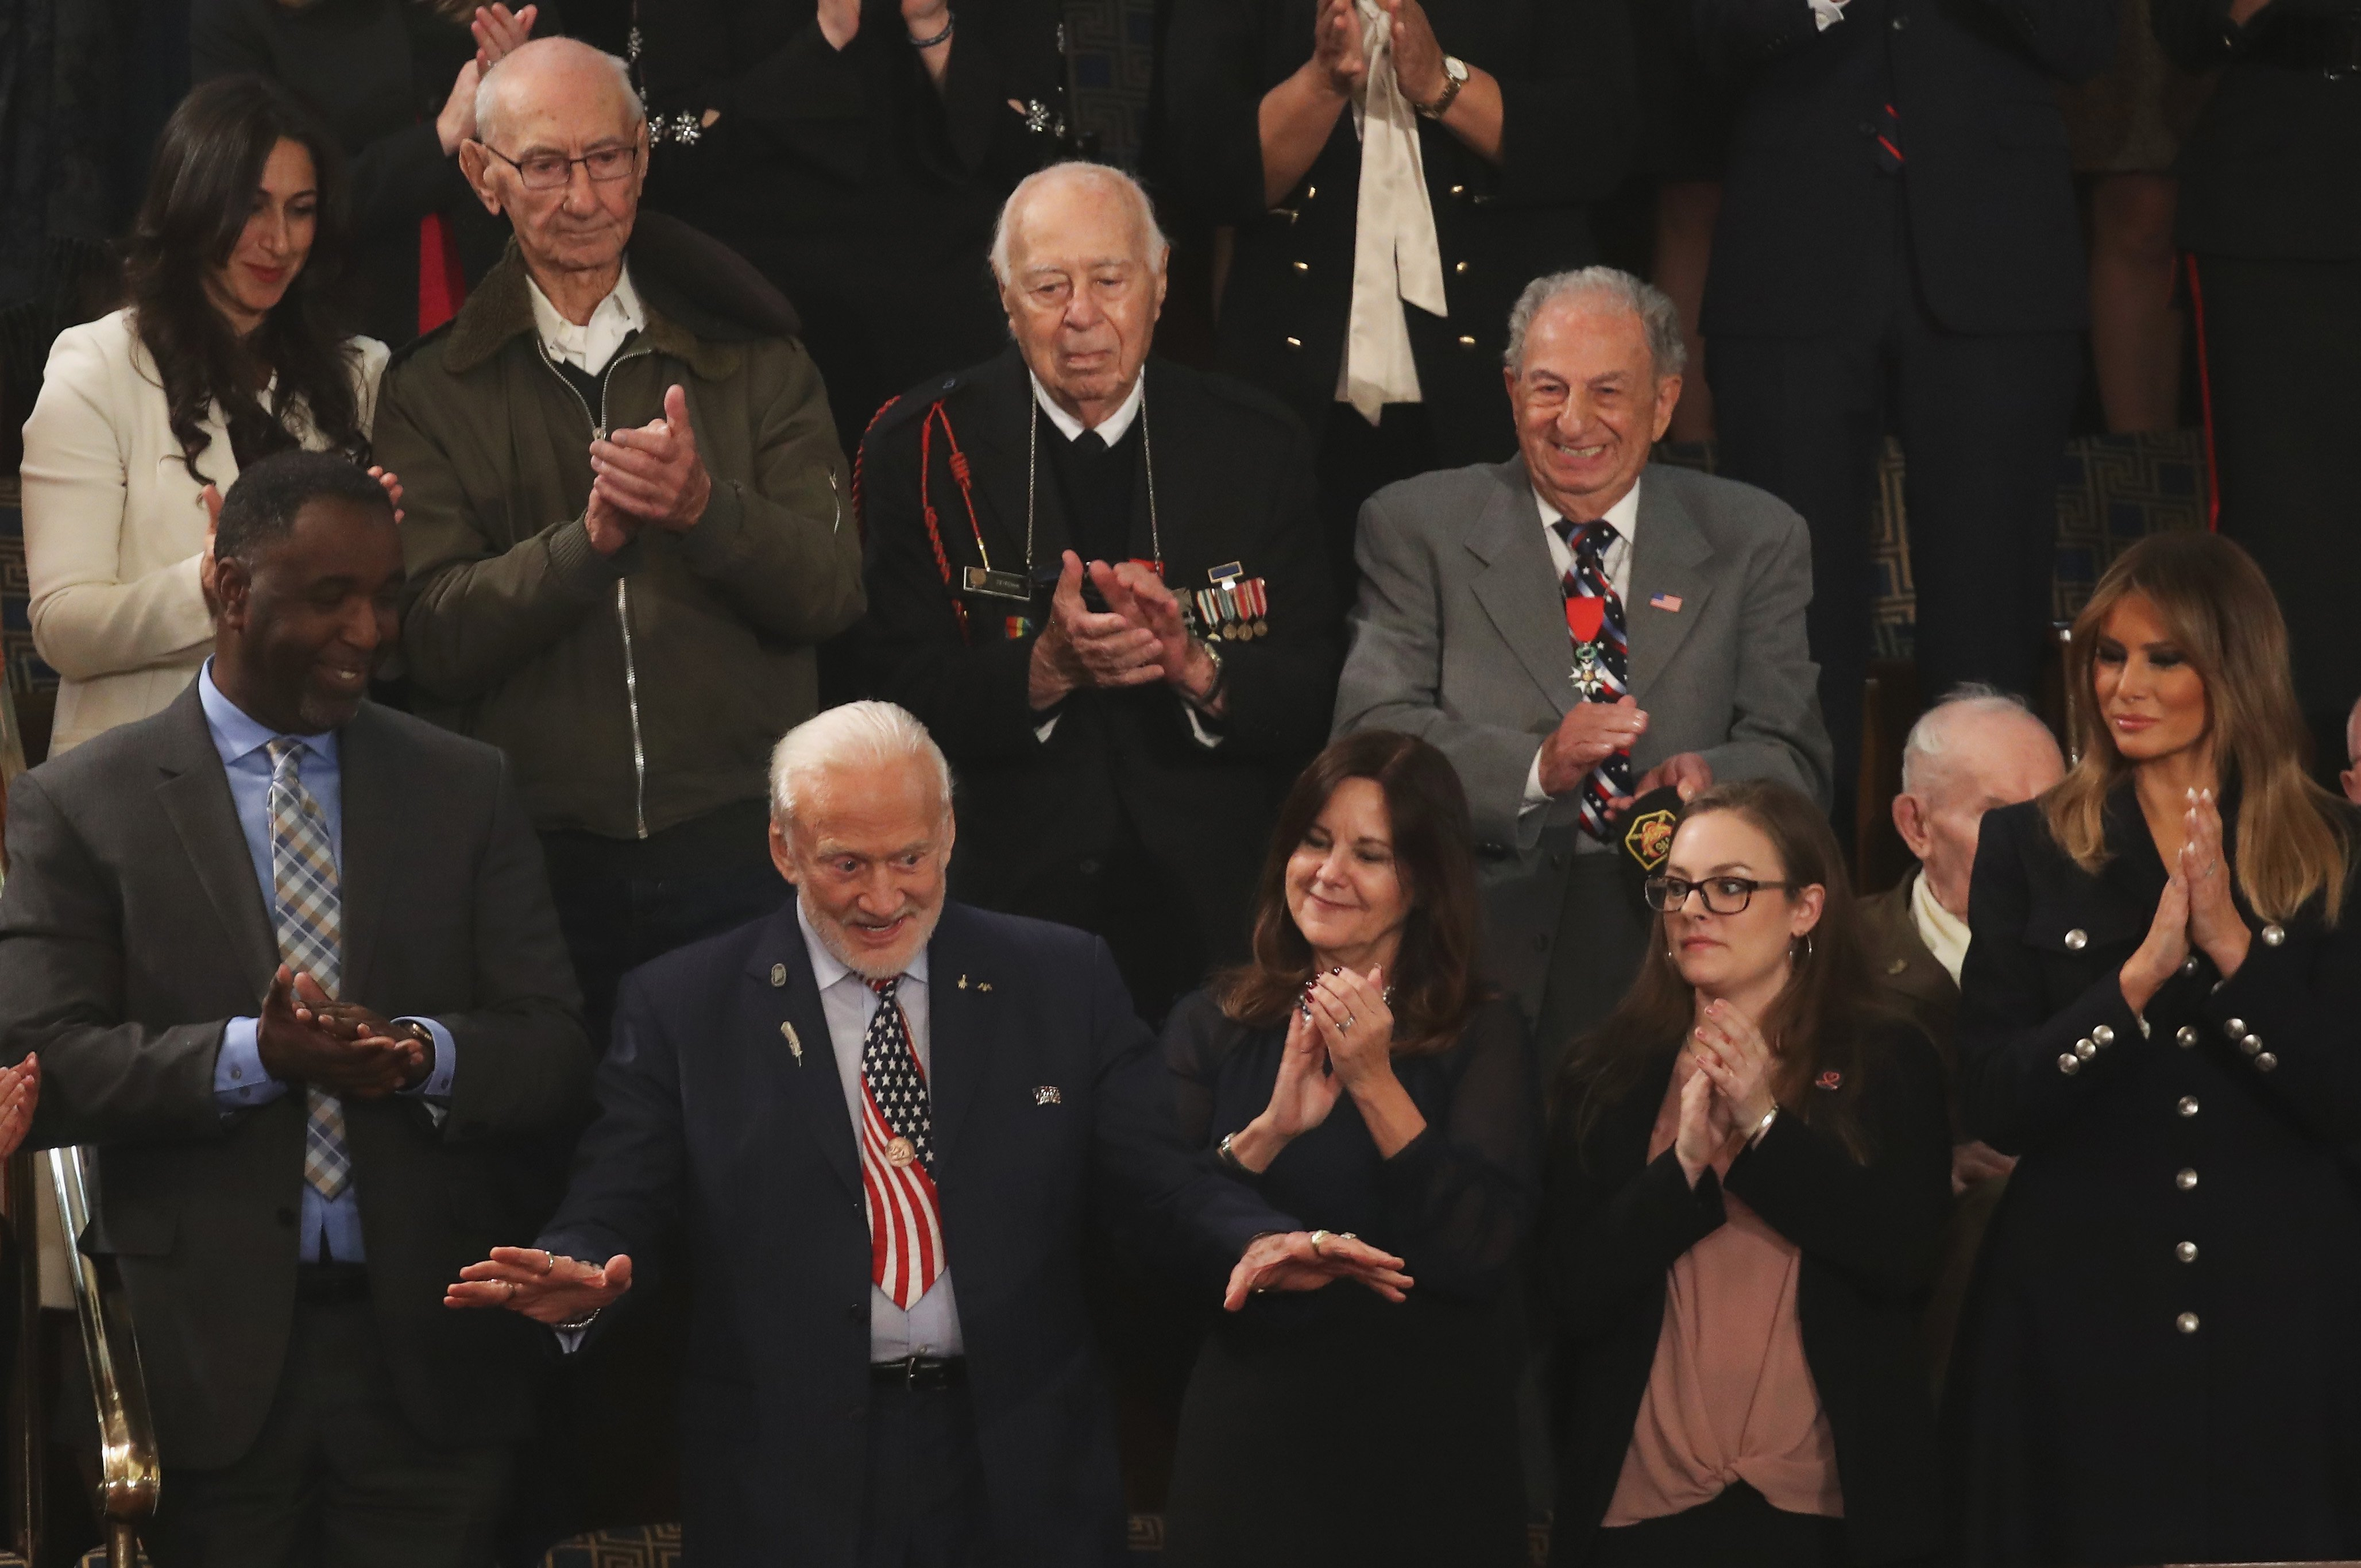 Buzz Aldrin reacting to a standing ovation during the State of the Union address | Photo: Getty Images